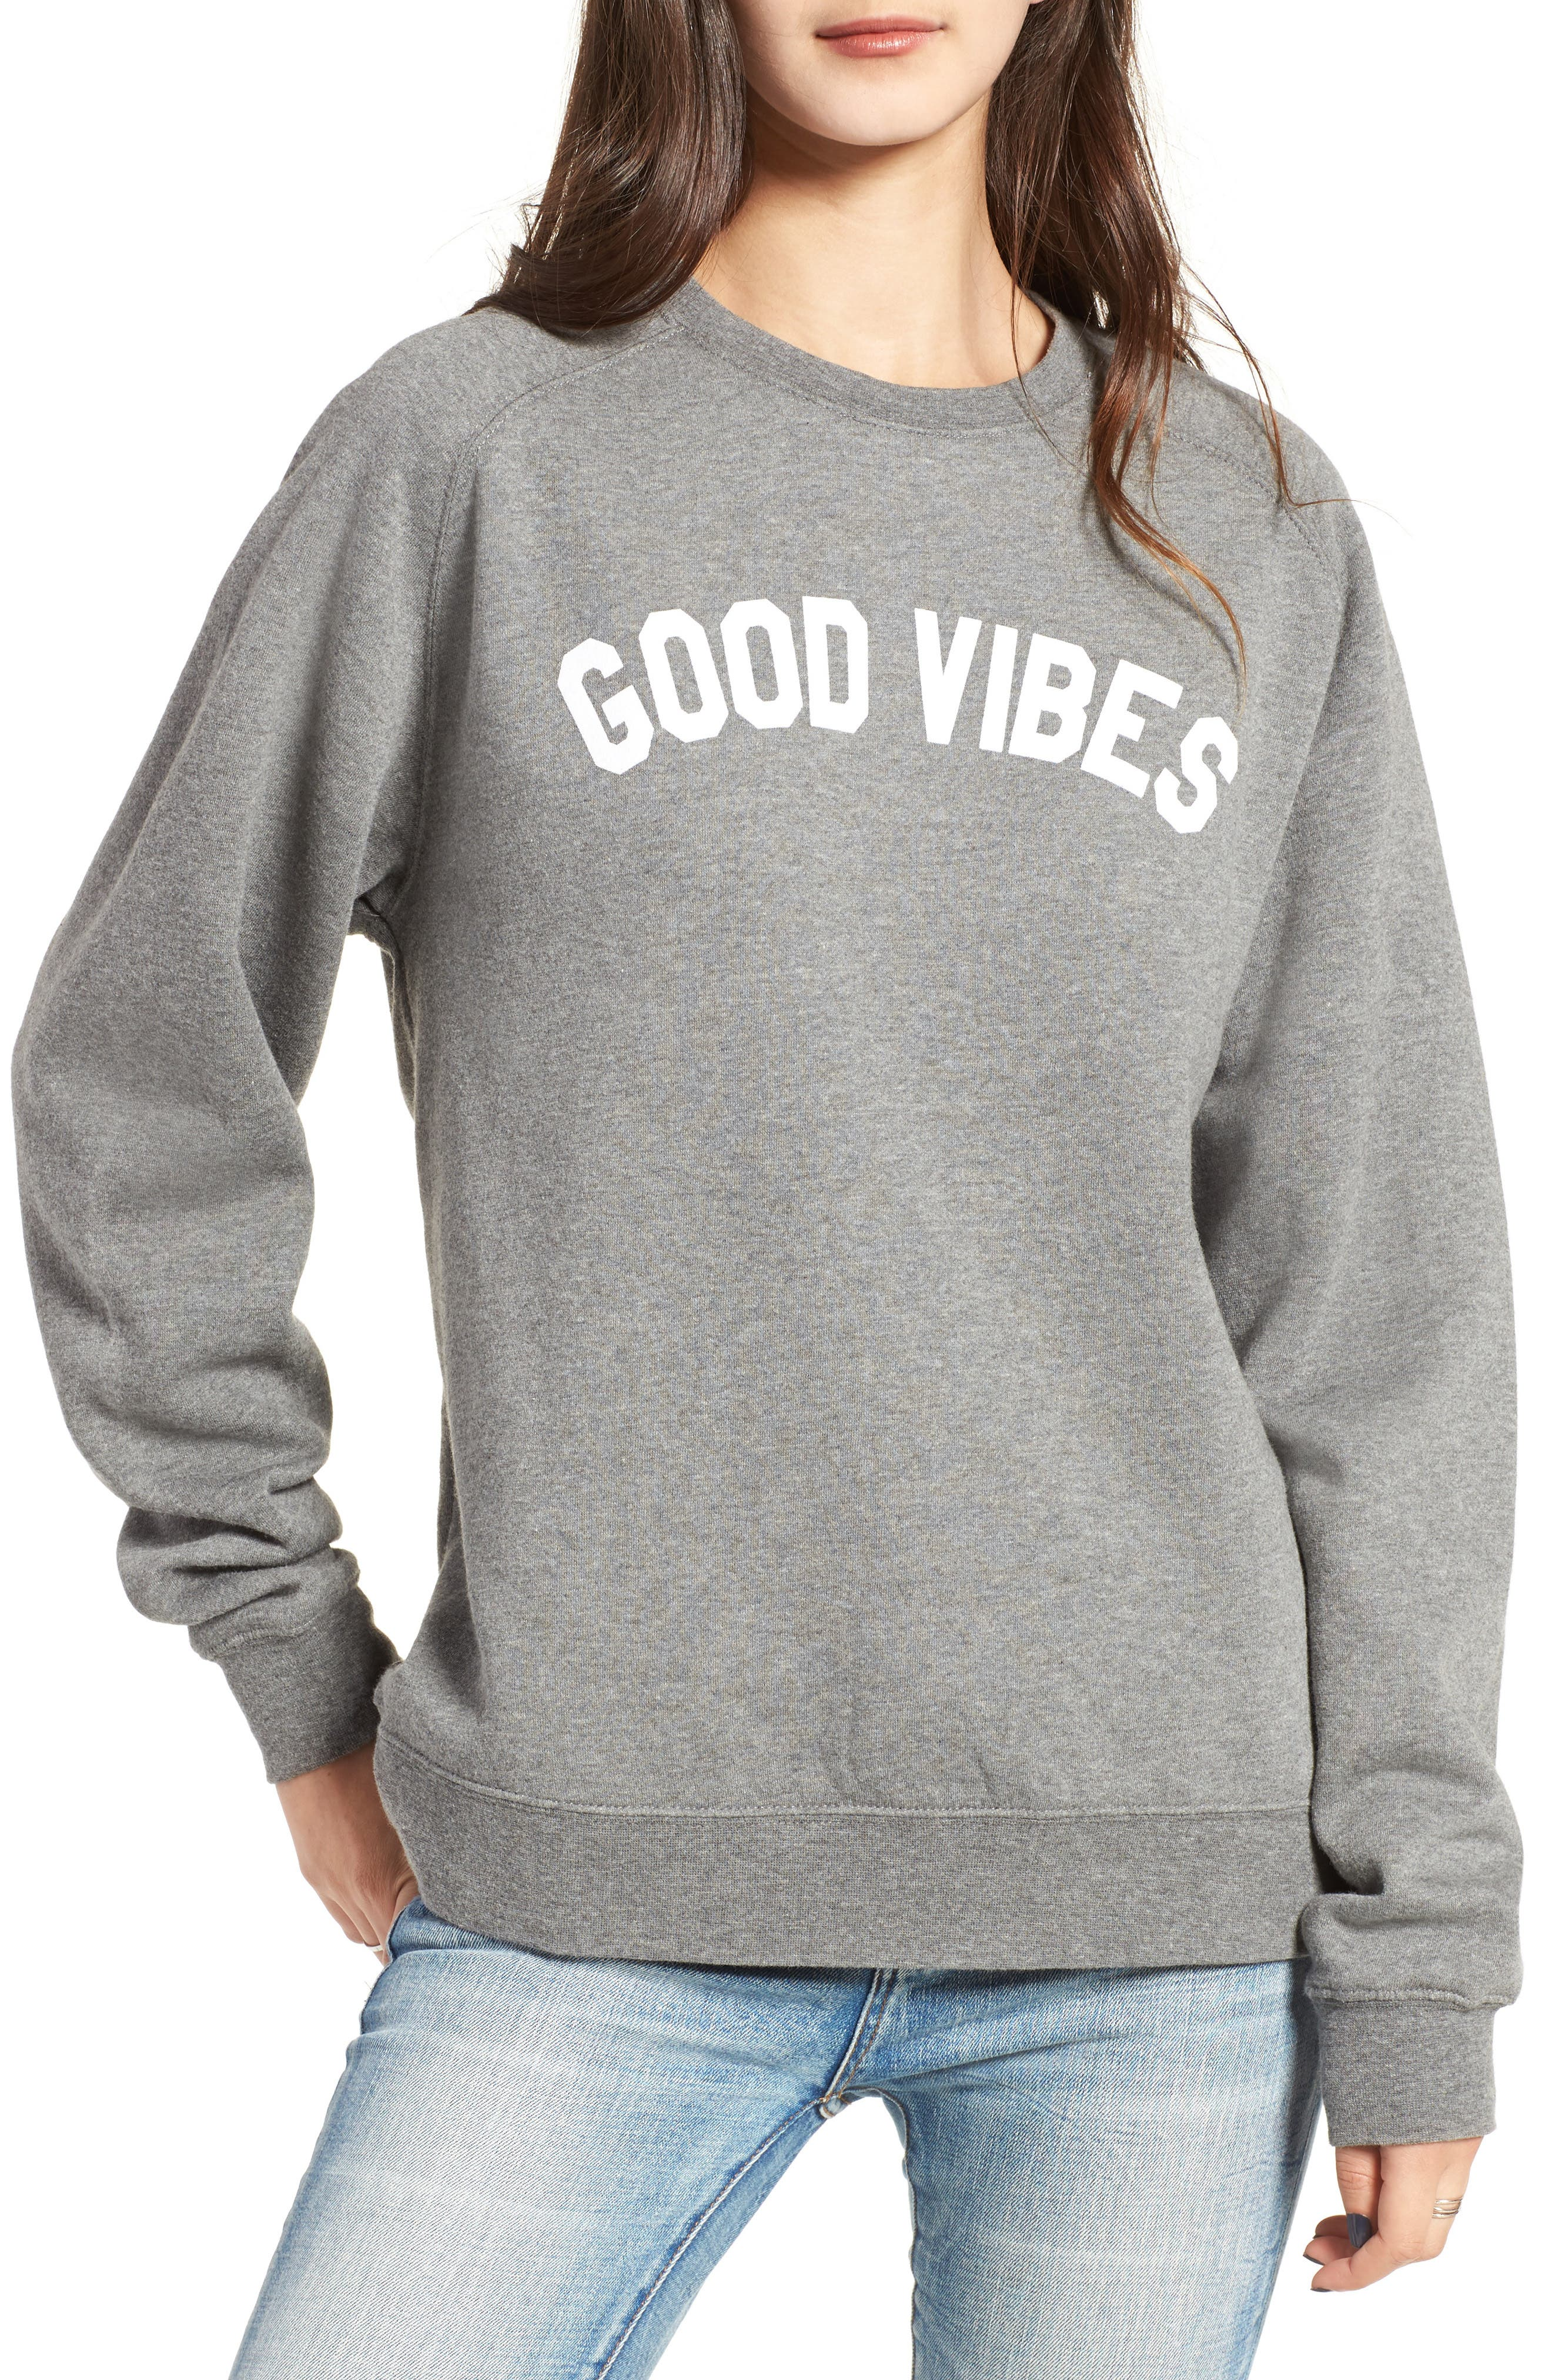 Good Vibes Willow Sweatshirt,                         Main,                         color, Heather Grey